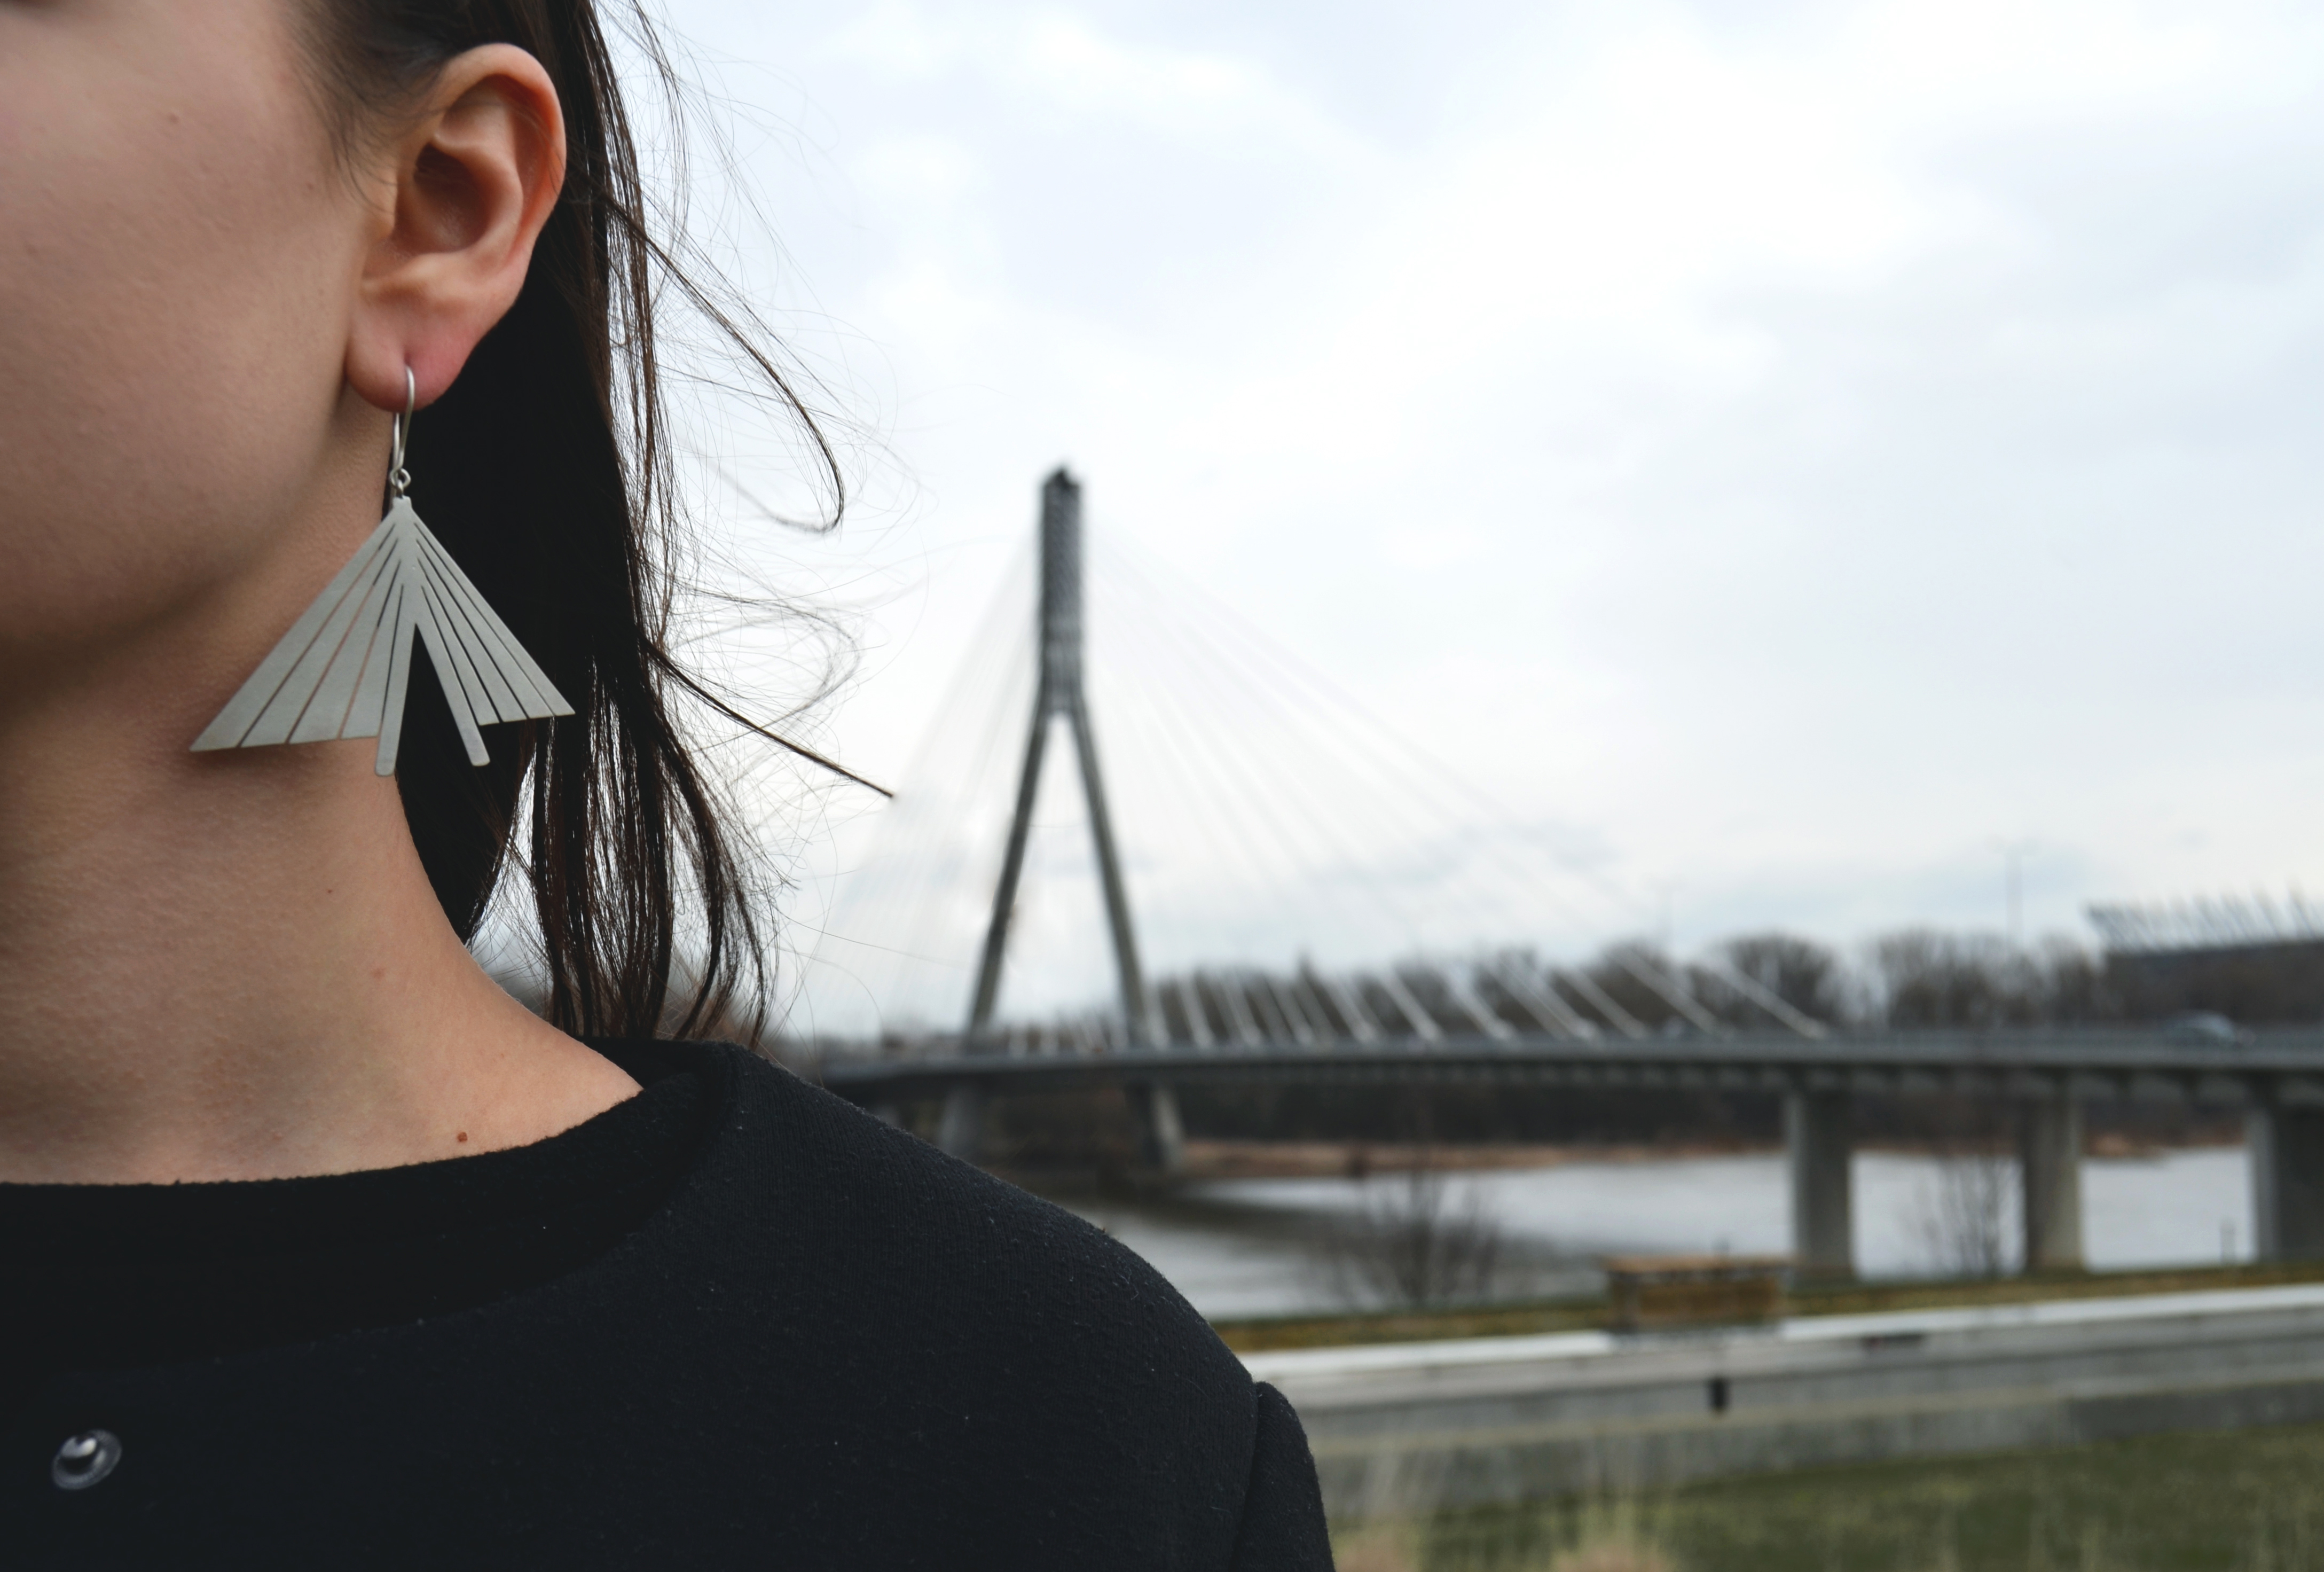 Artist pays homage to Warsaw districts with striking silver jewellery – The First News 1